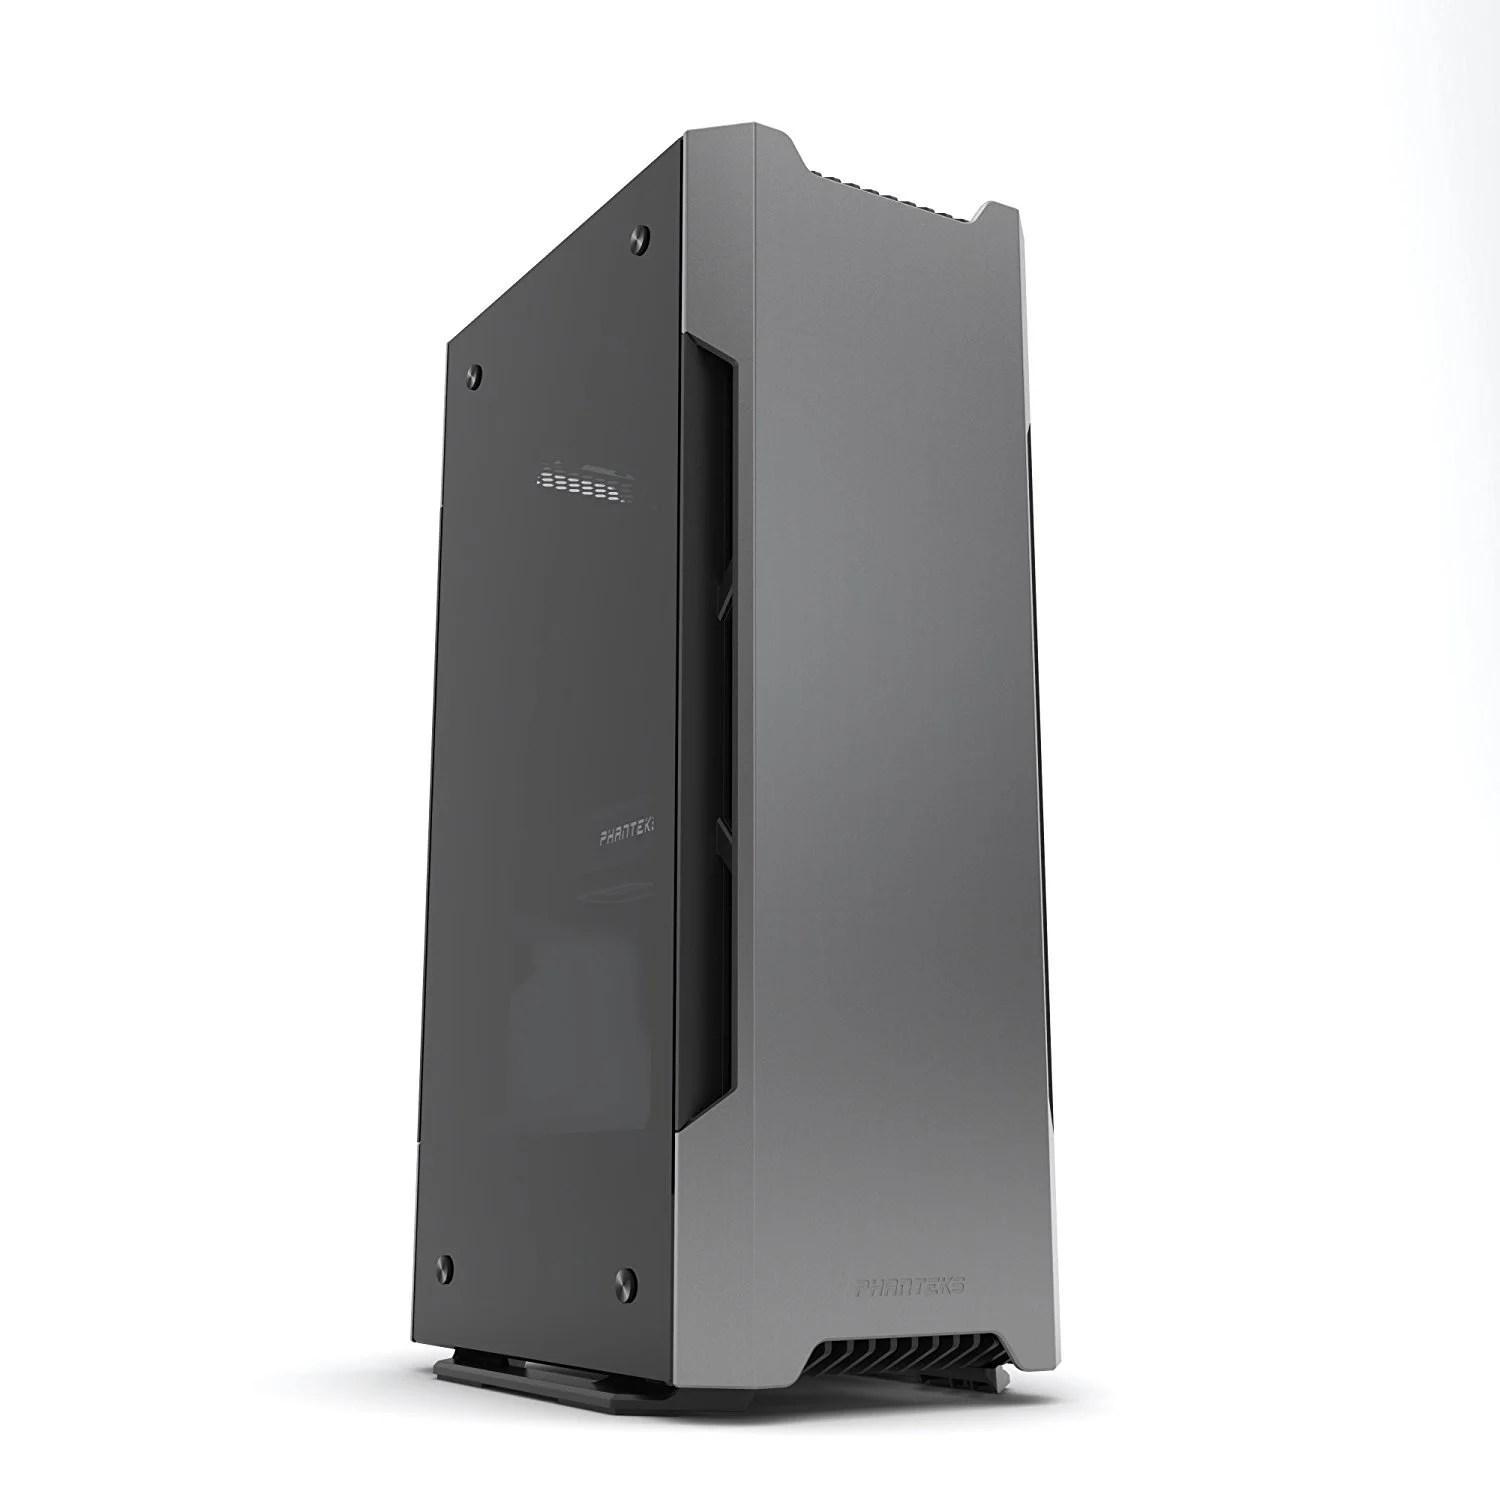 living room friendly pc case lights for ceiling best cases 2018 build a quiet stylish expert reviews the evolv shift mini itx enclosure stands just 47cm tall and its tiny footprint measures 27cm wide 17cm deep in anthracite grey or satin black